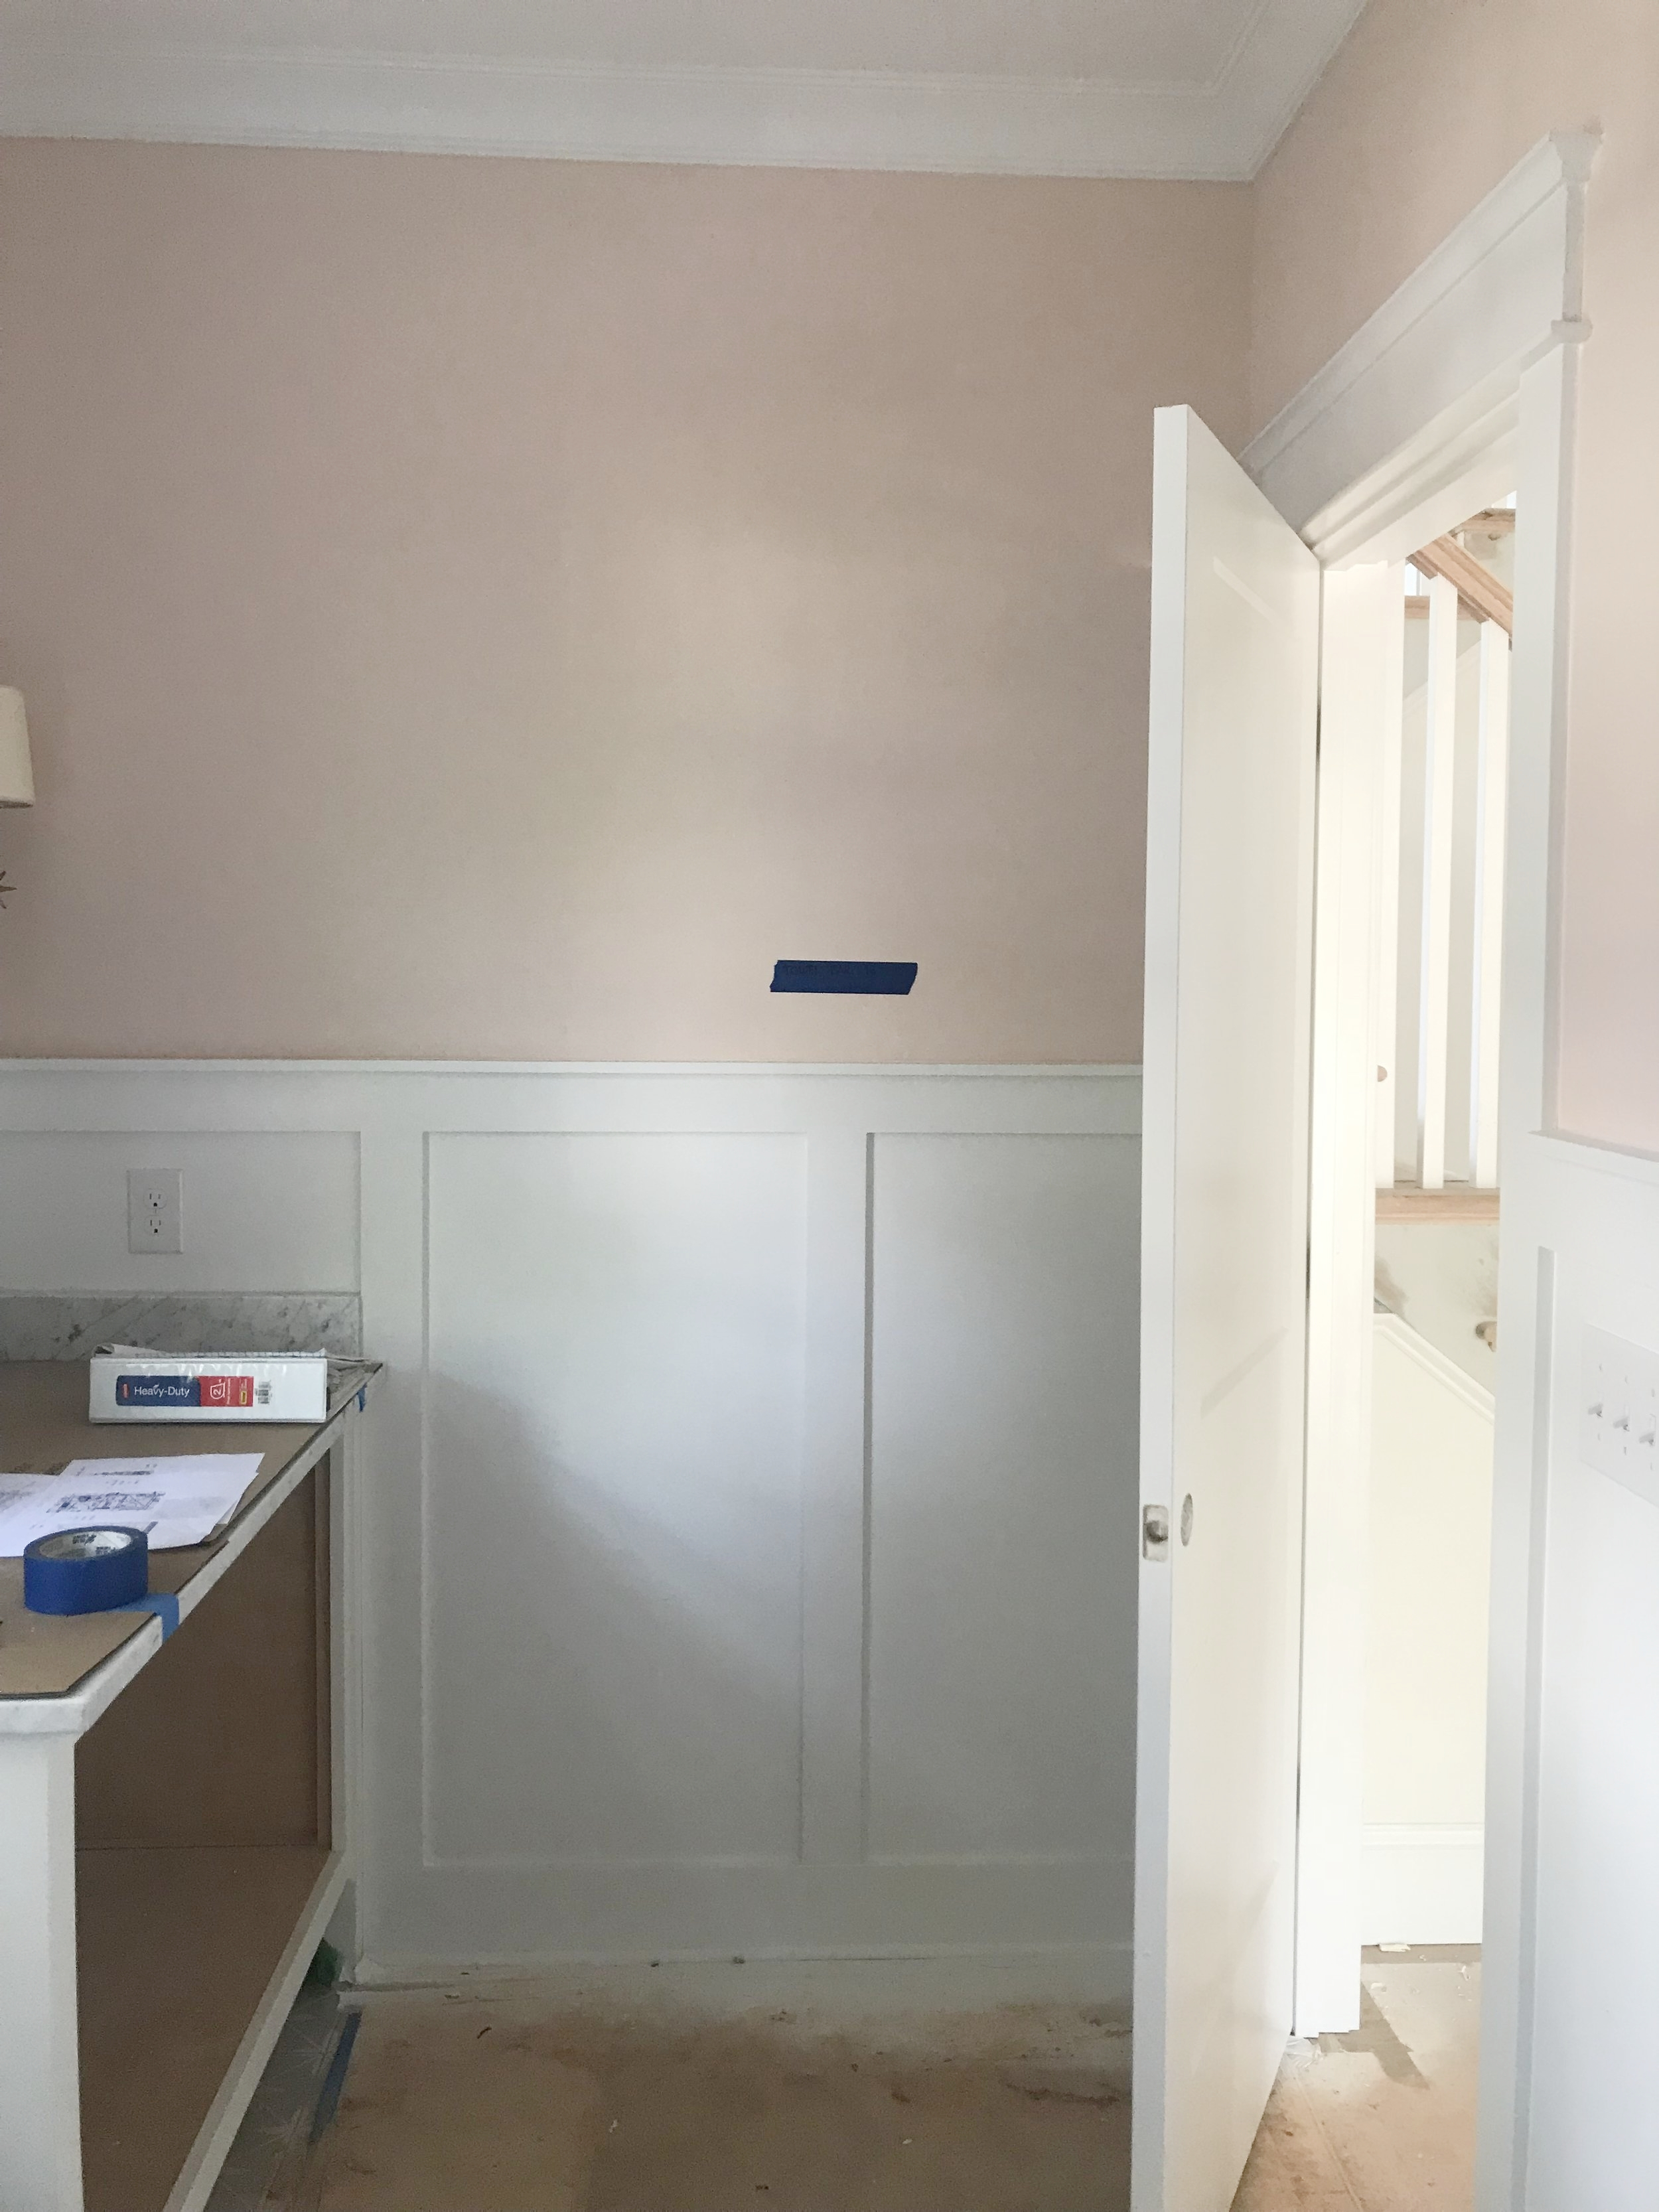 Farrow & Ball Pink Ground Paint- New Construction, Charlotte NC by Timberline Homes, Interior Design by Laura Design Co.